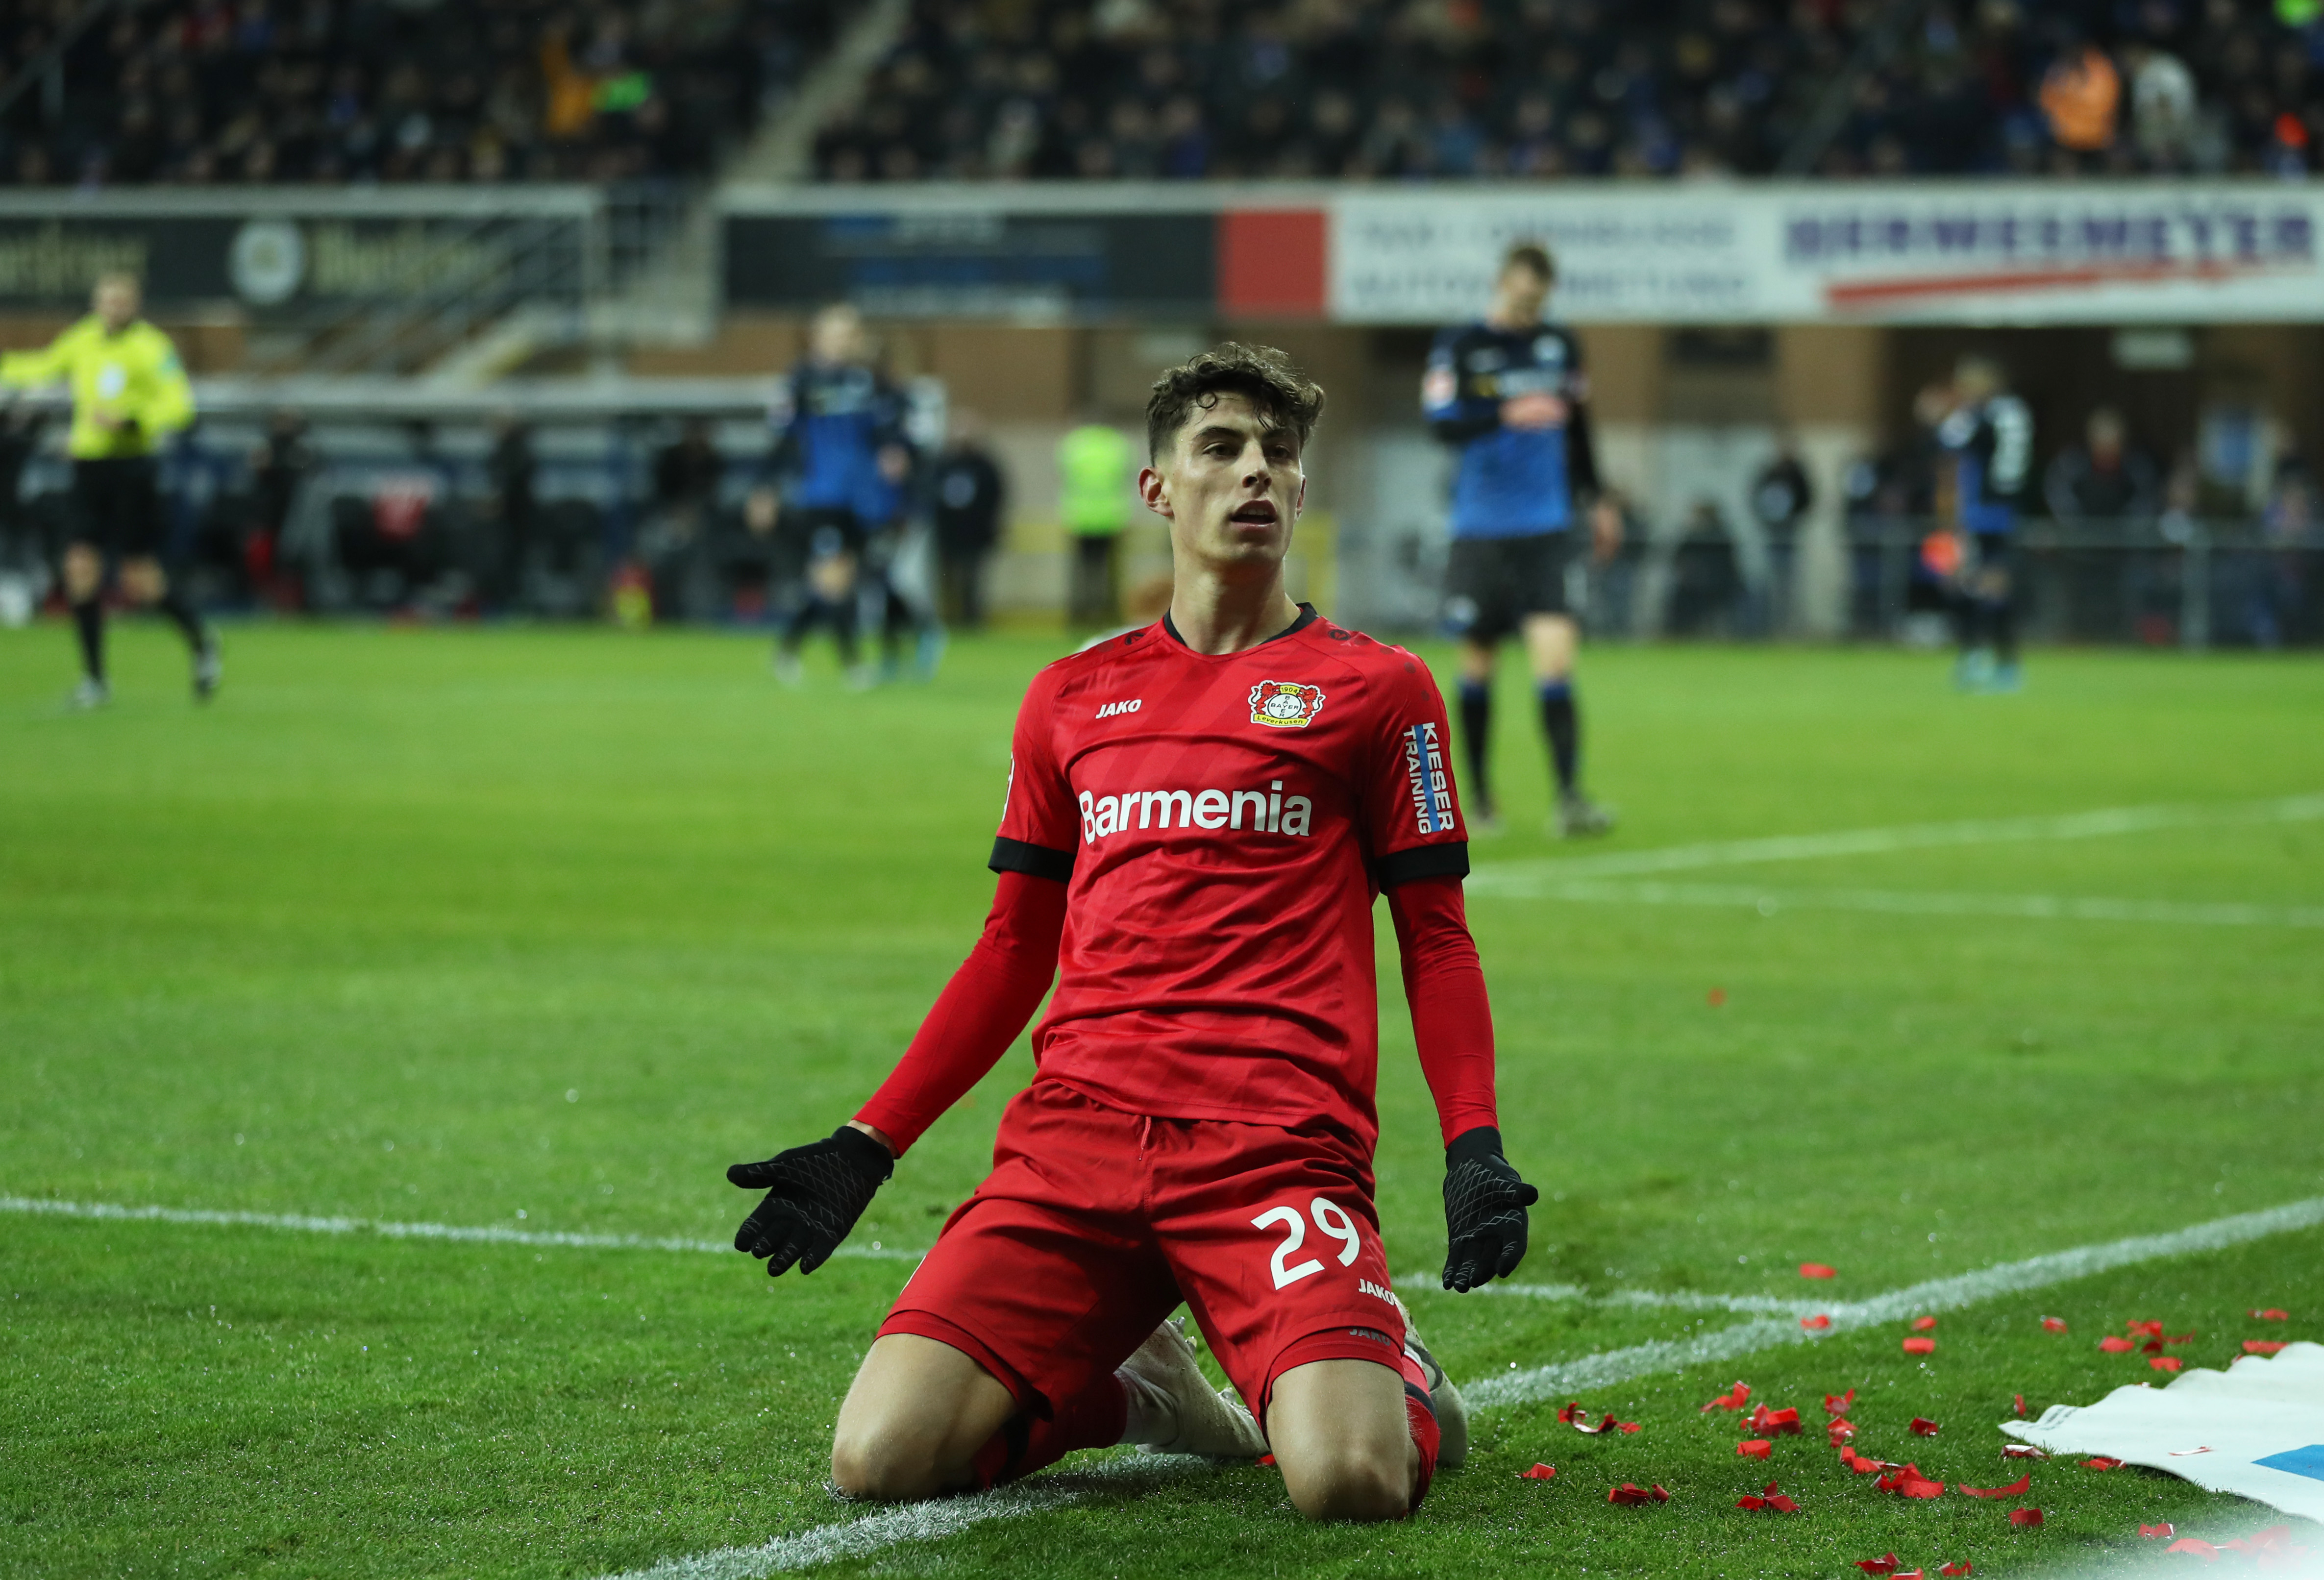 Manchester City Entering The Kai Havertz Race - Havertz celebrates a goal